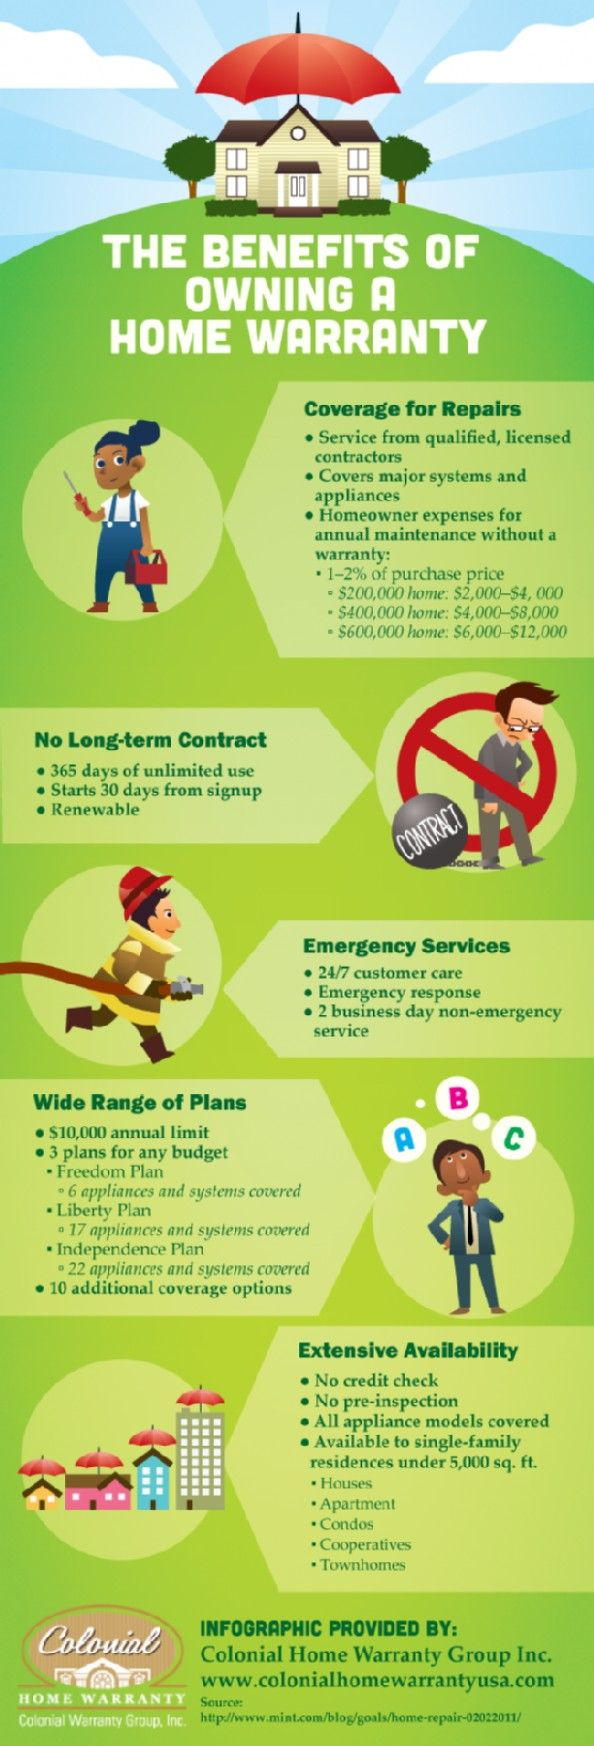 Benefits of owning a home warranty infographic one for the money benefits of owning a home warranty infographic sciox Choice Image